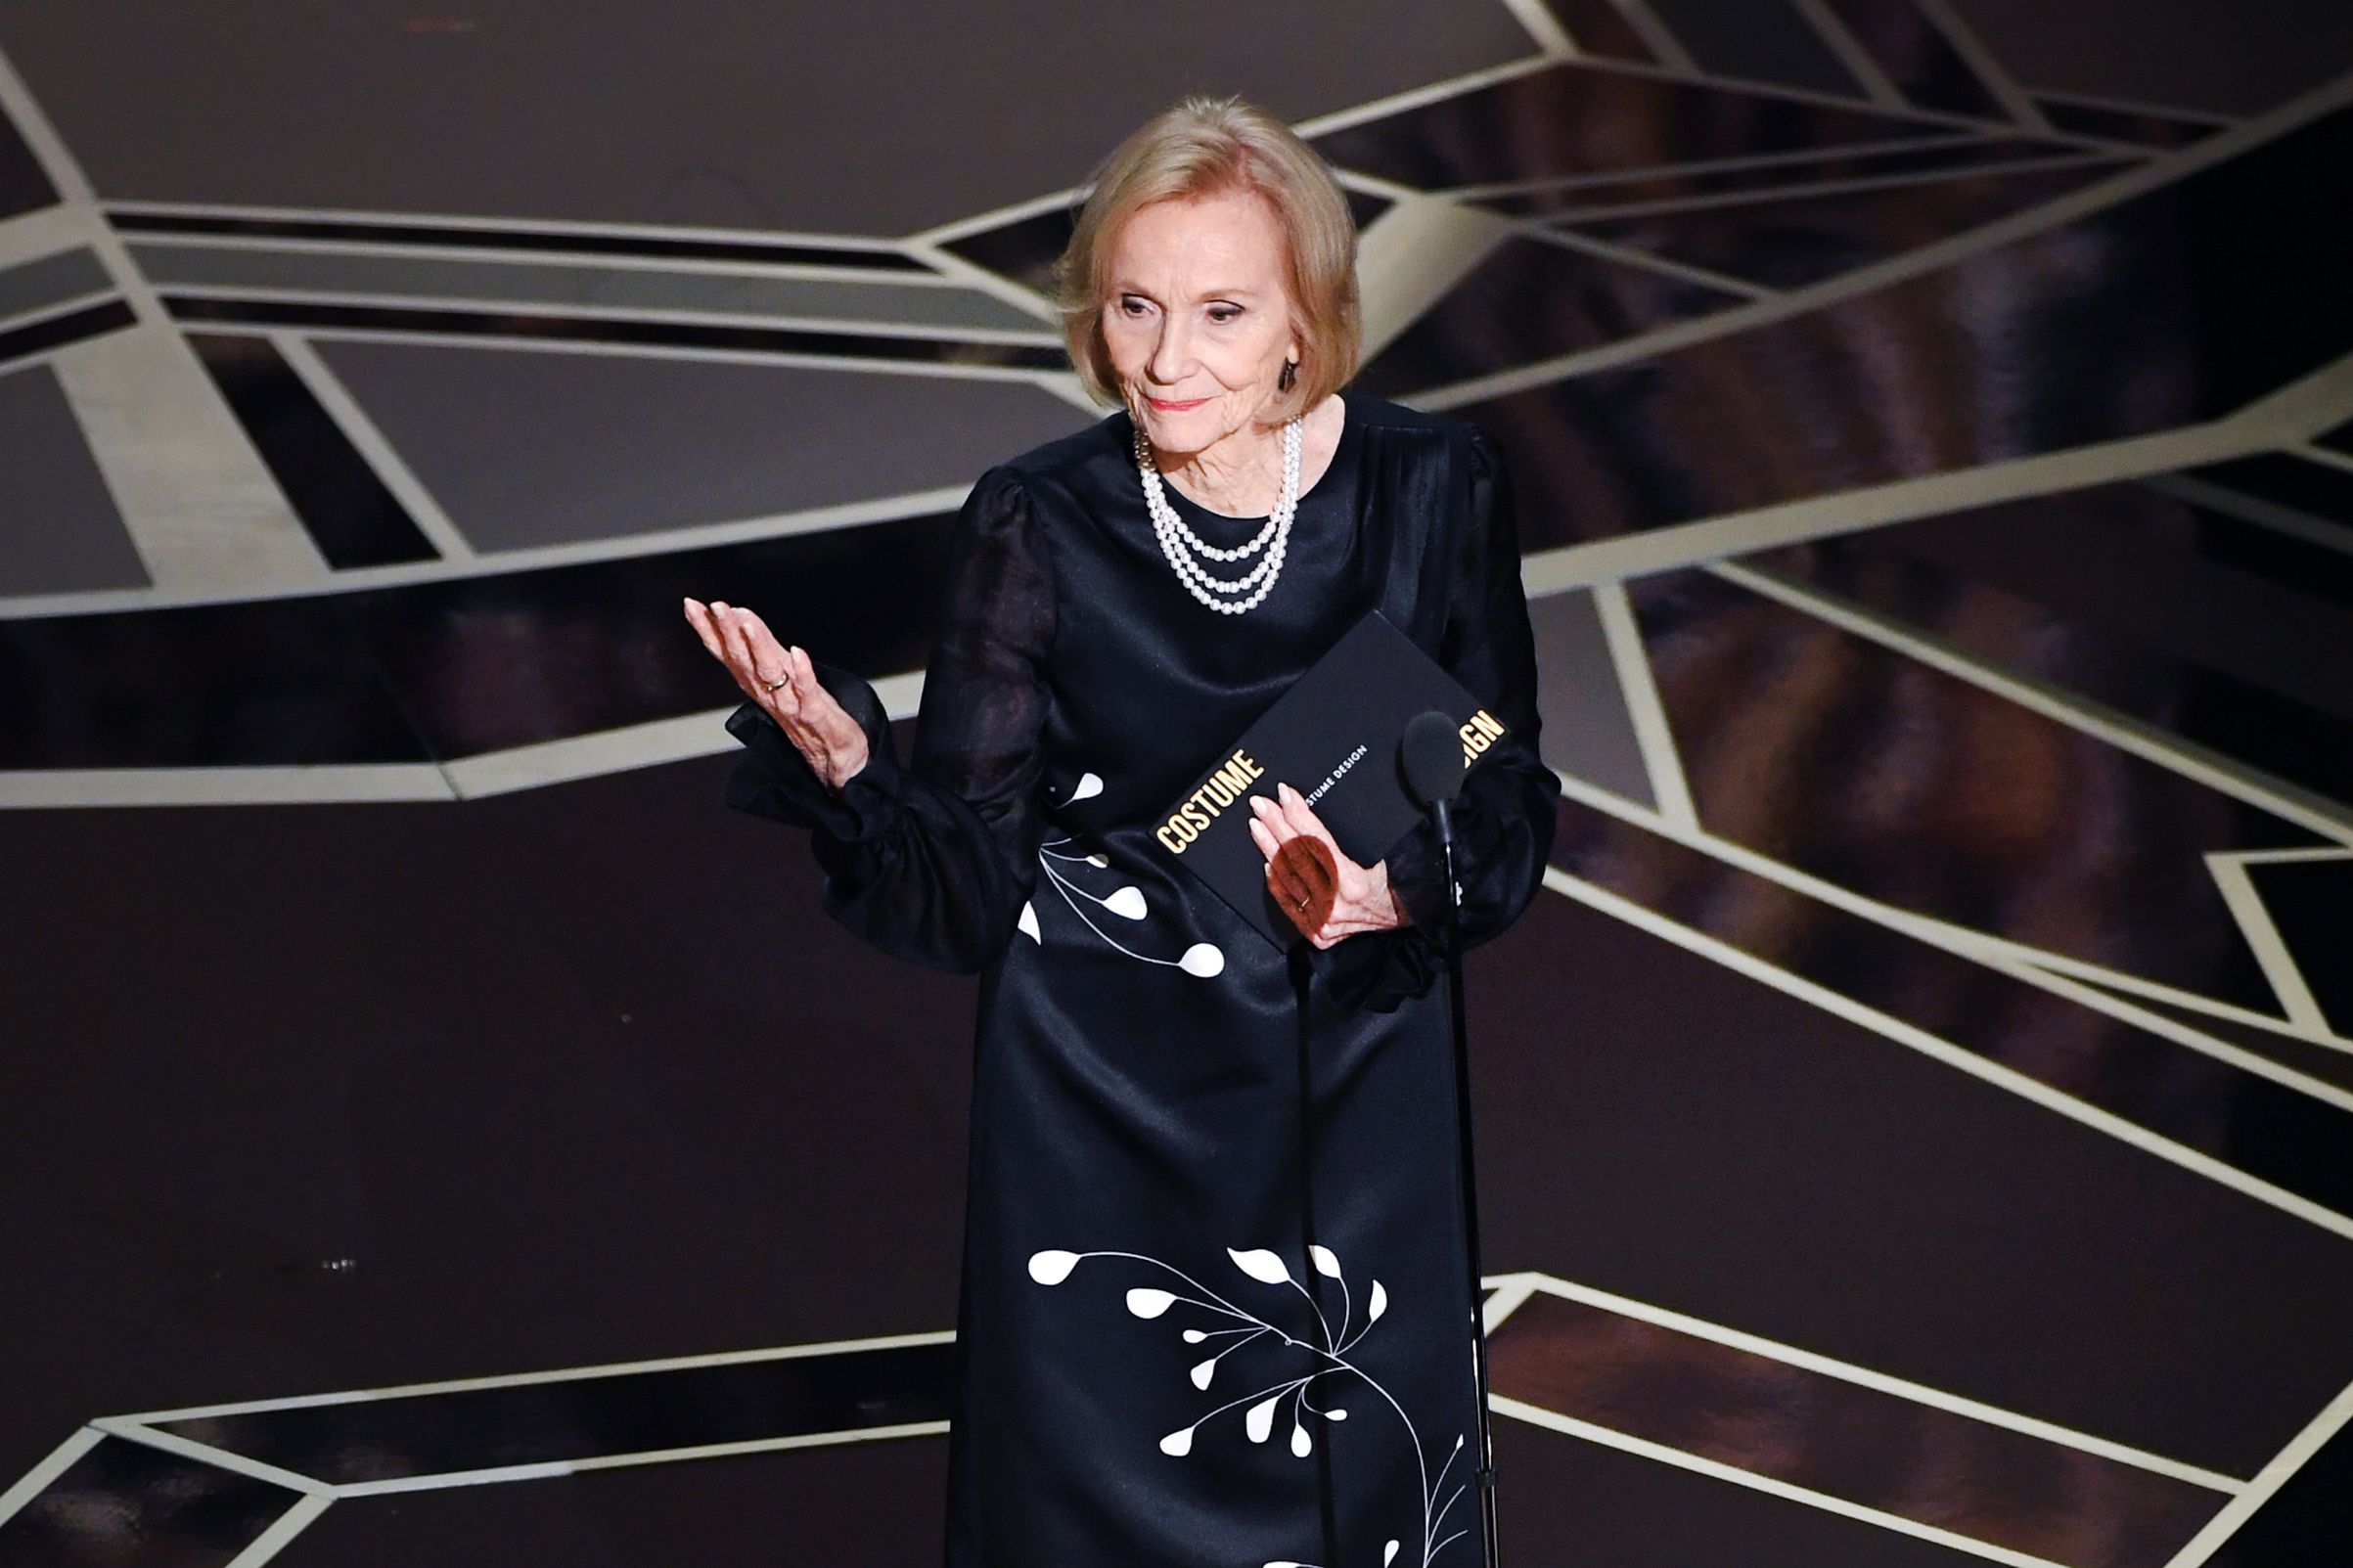 Actor Eva Marie Saint speaks onstage during the 90th Annual Academy Awards at the Dolby Theatre at Hollywood & Highland Center on March 4, 2018 in Hollywood.